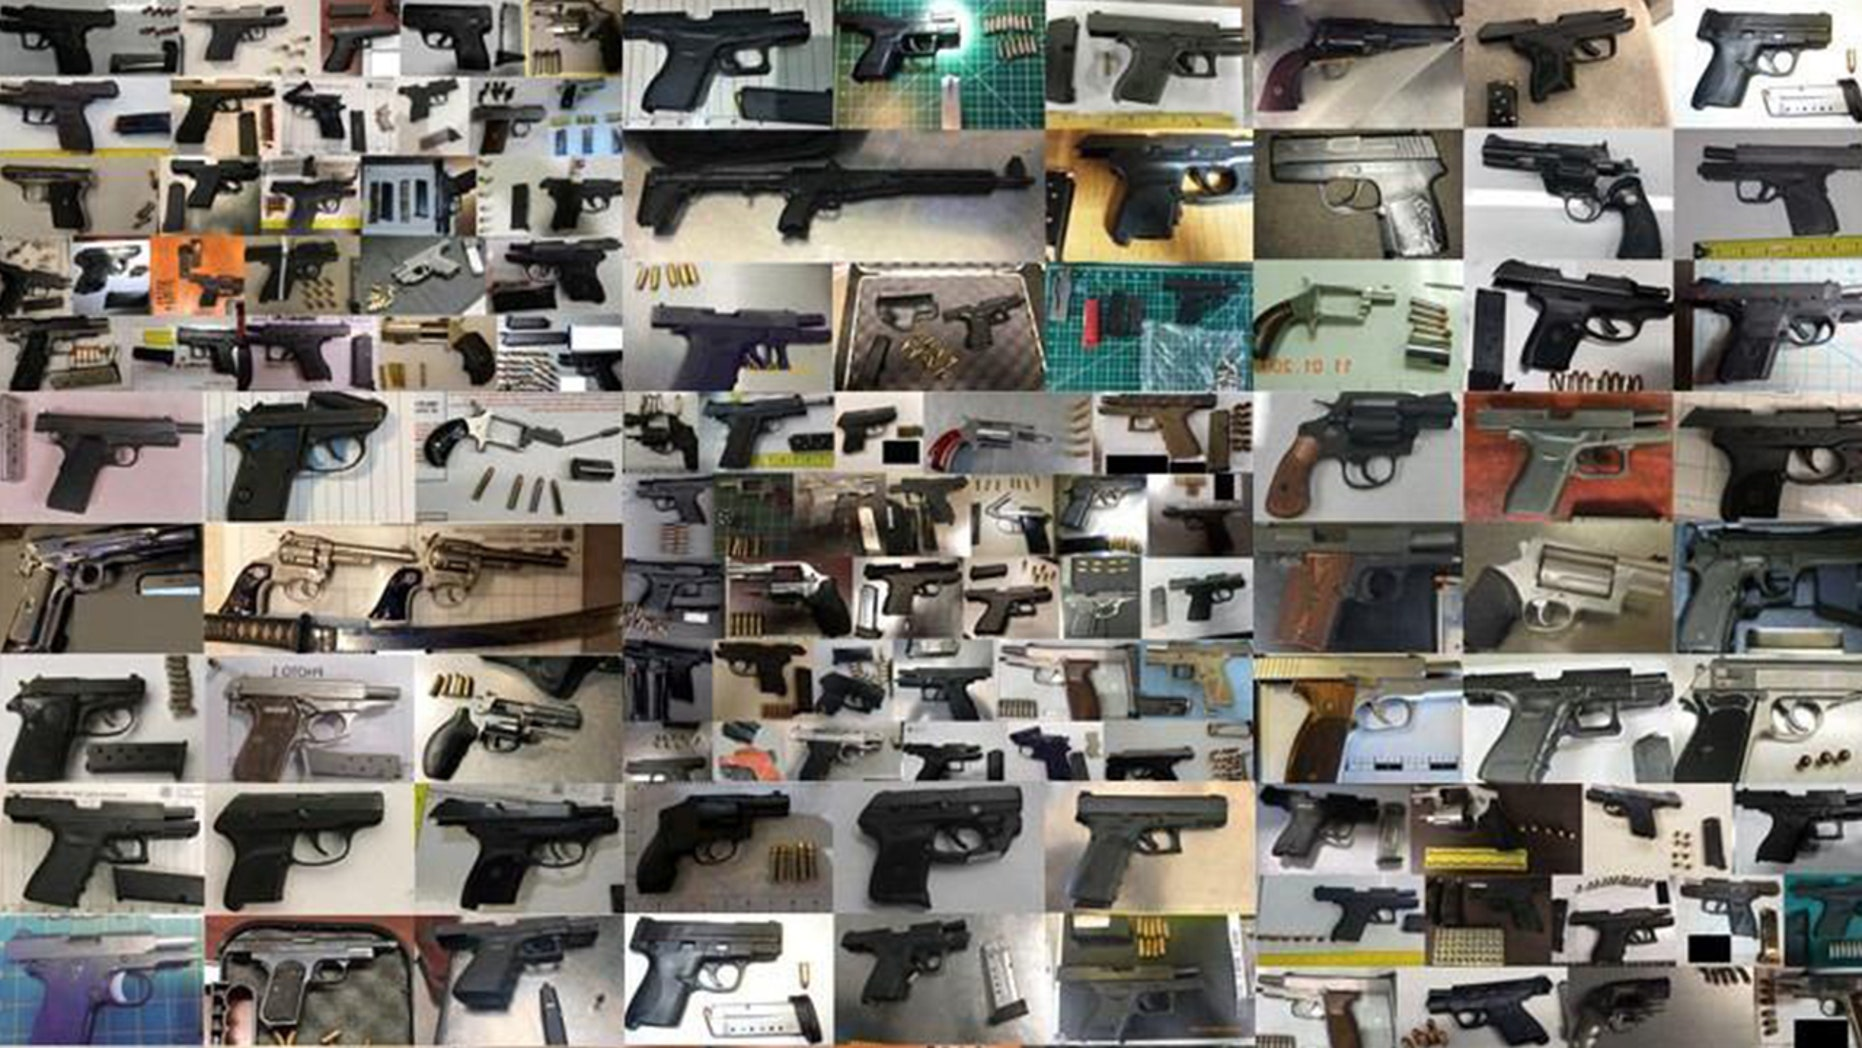 TSA report: More loaded guns in carry on bags at FL airports